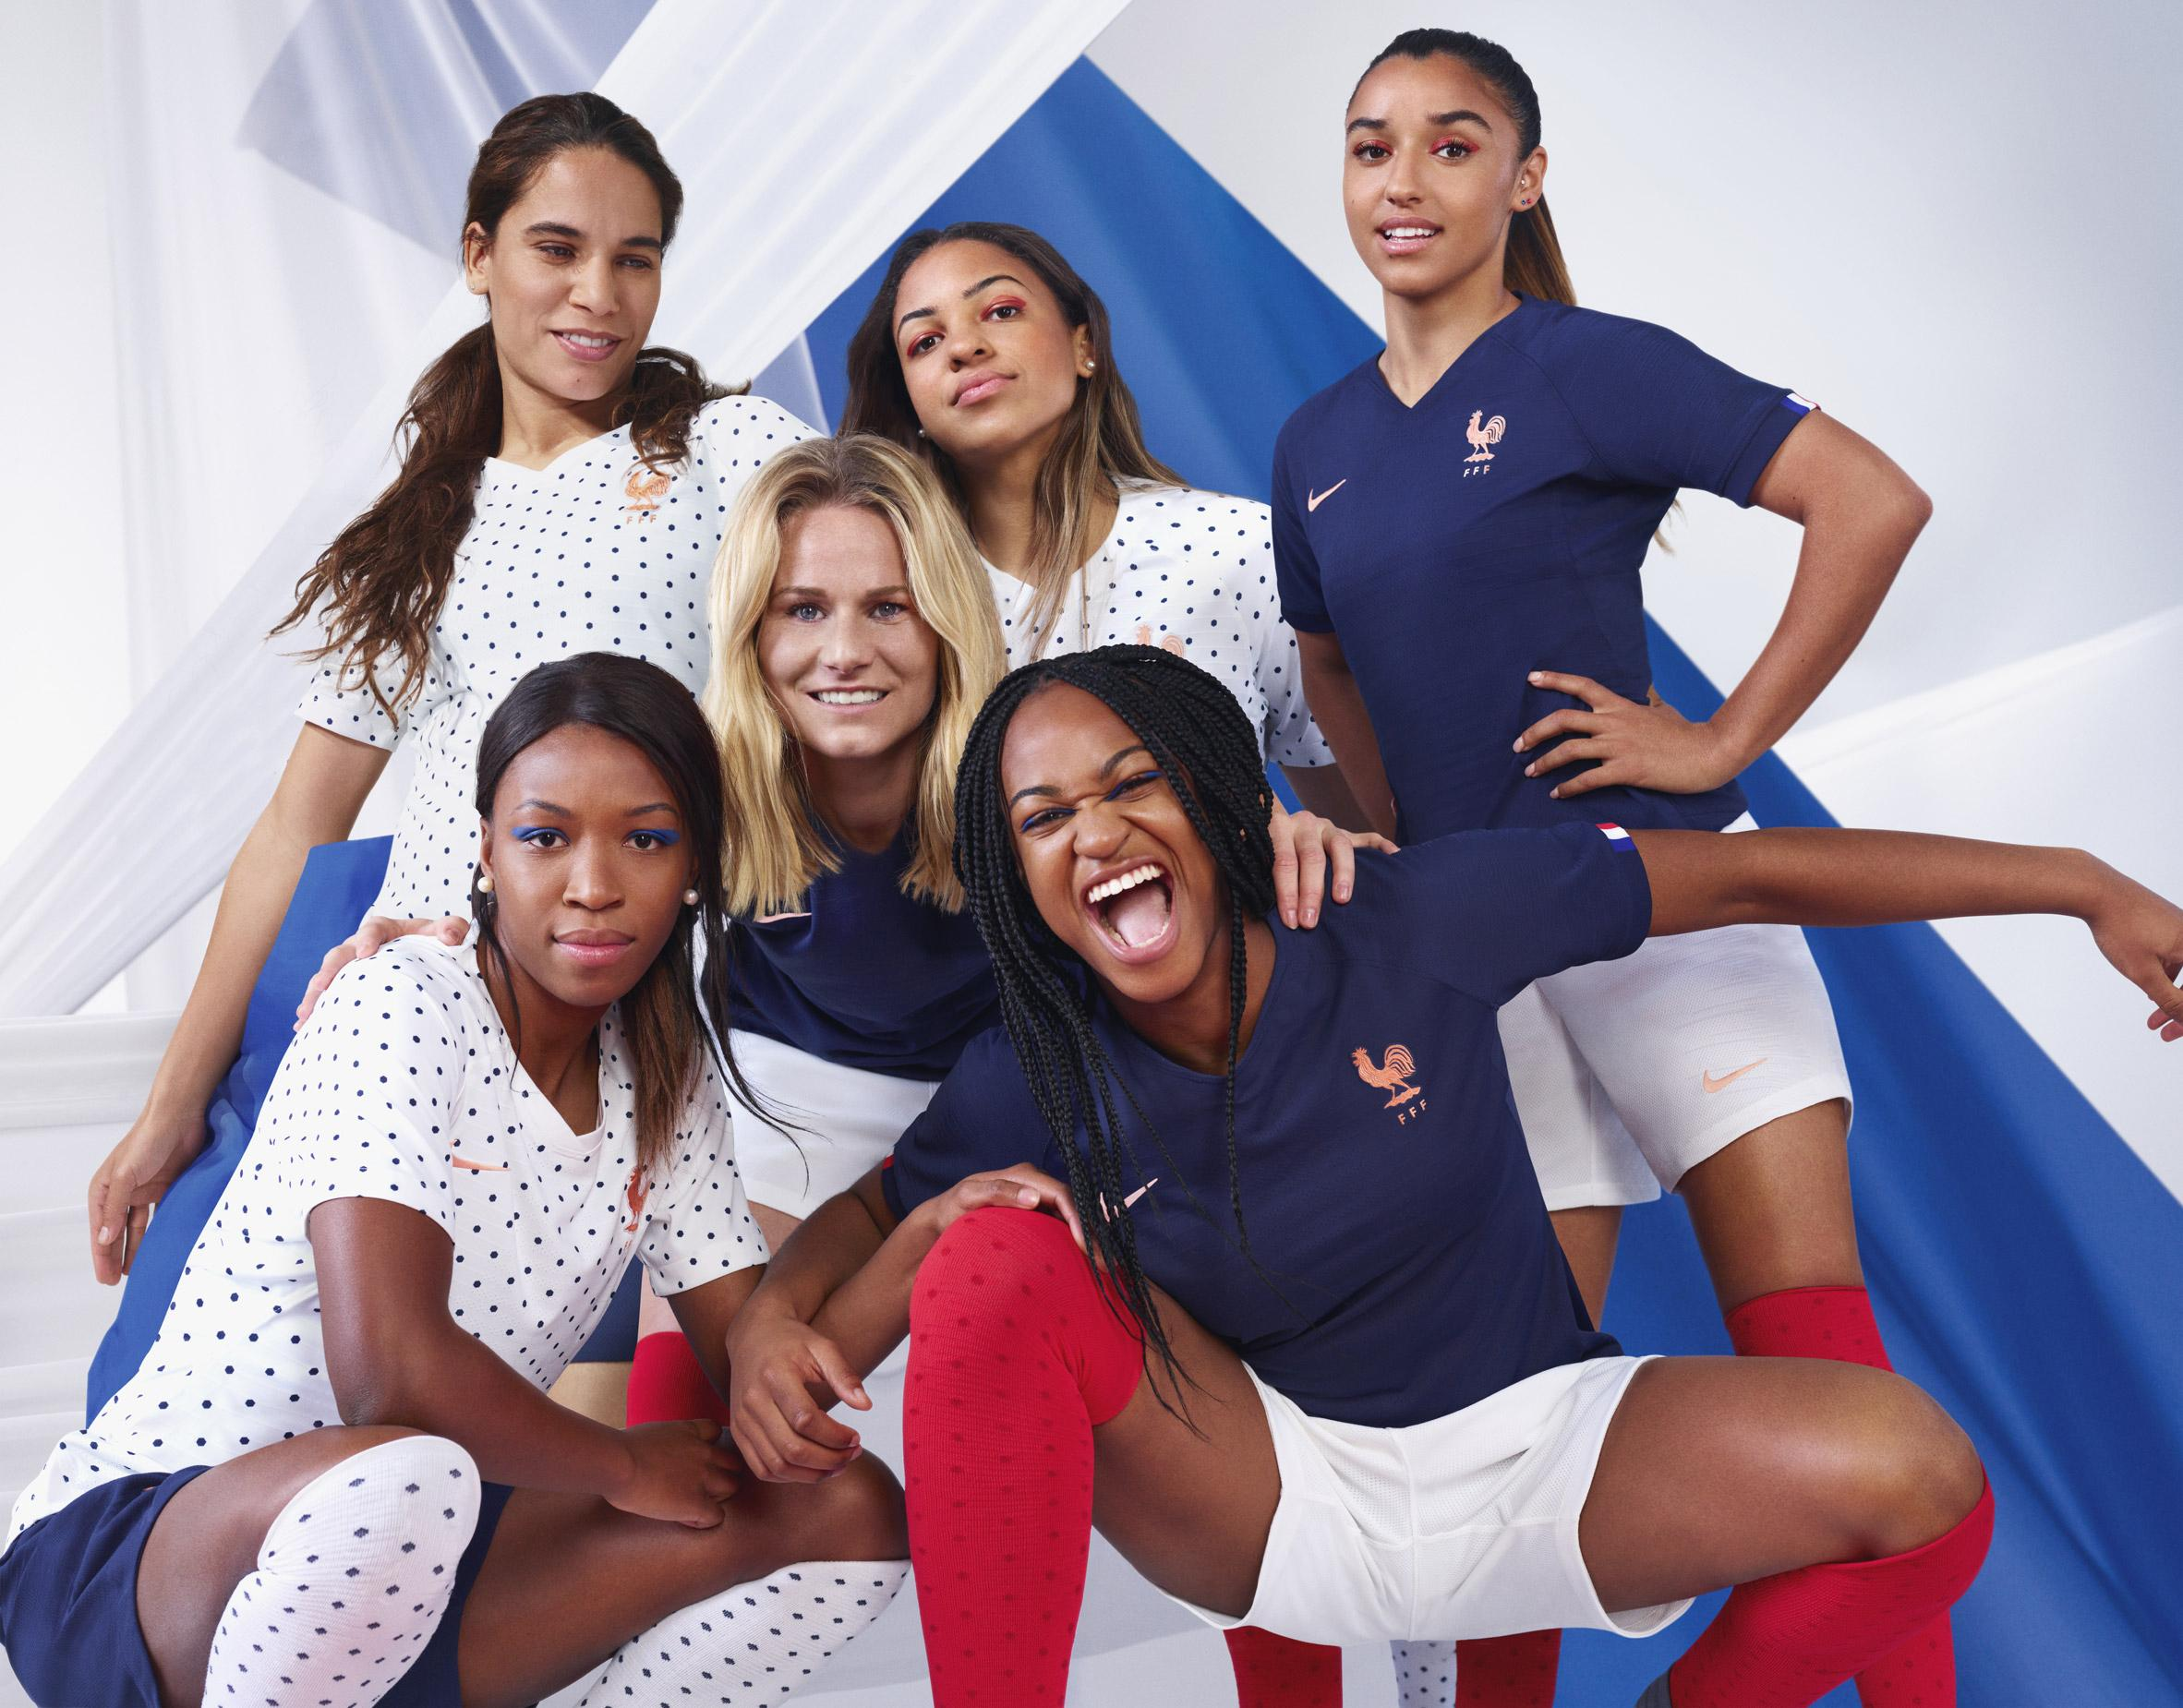 8f08b75b4 Women's World Cup 2019: Every kit ranked and rated - now vote for your  favourite | The Independent